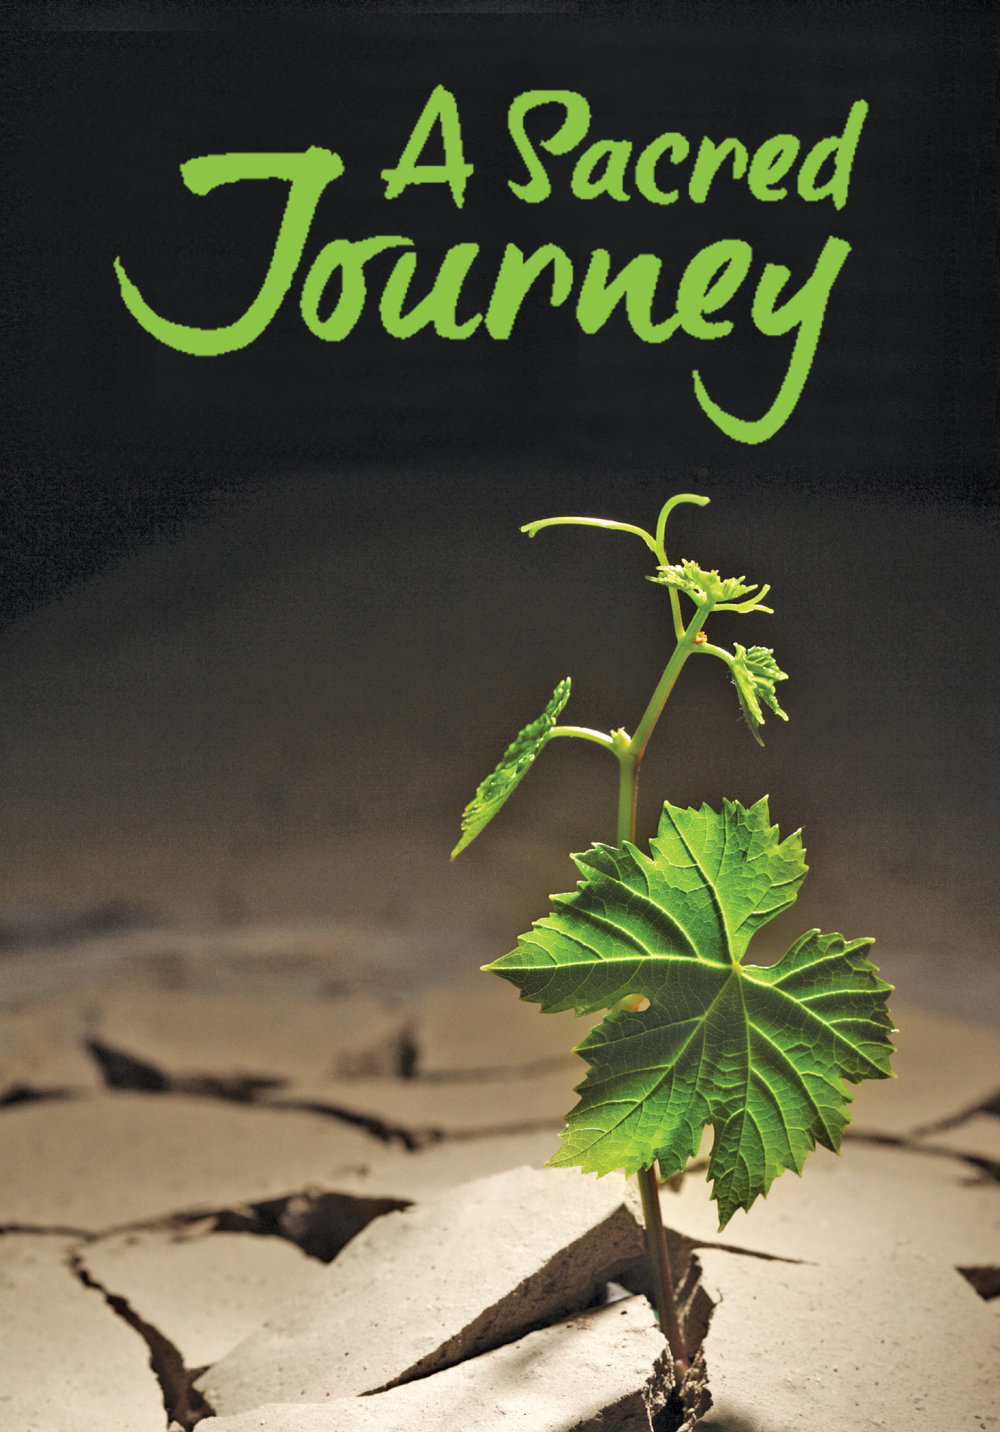 ASacredJourney-wLeaf.jpg